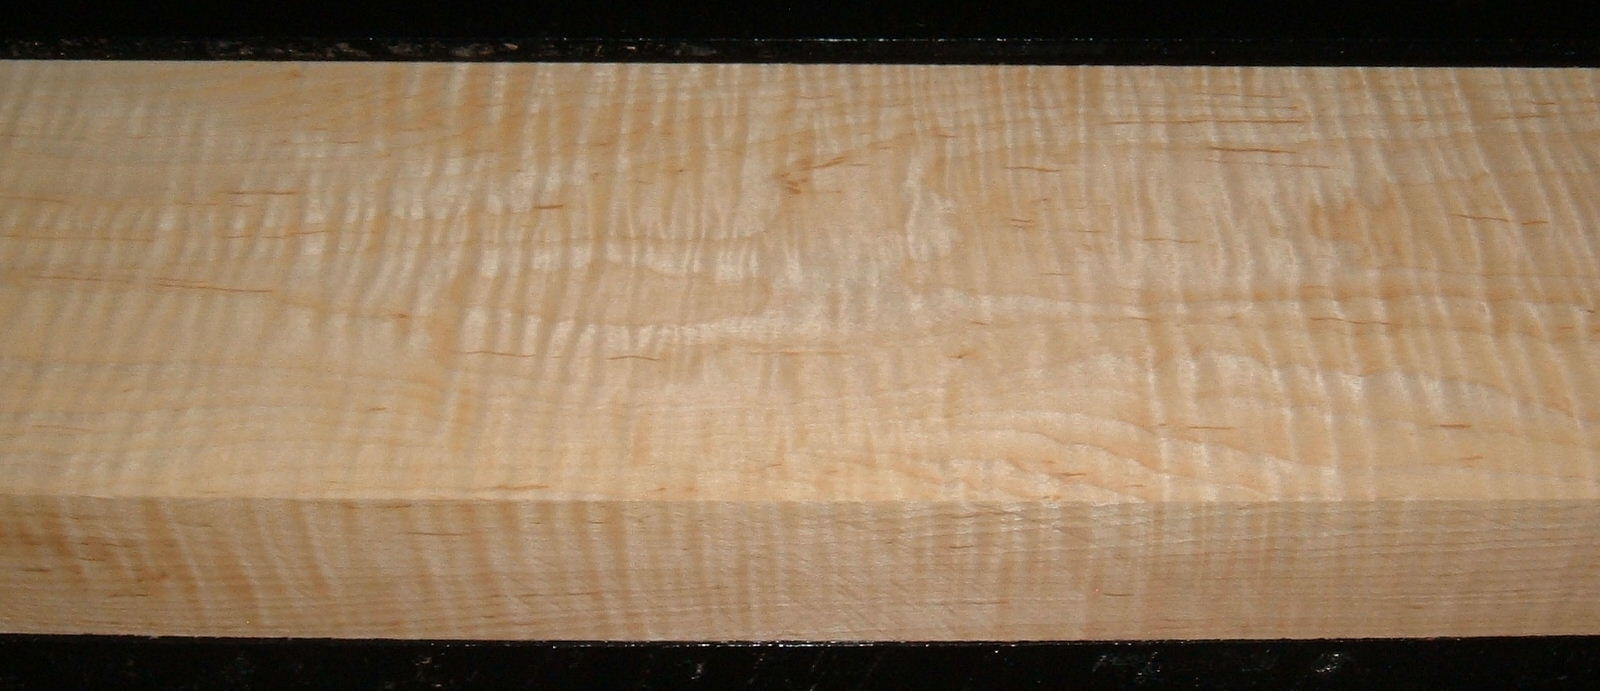 S-2144, 1-7/8x6x31, Curly Tiger Maple